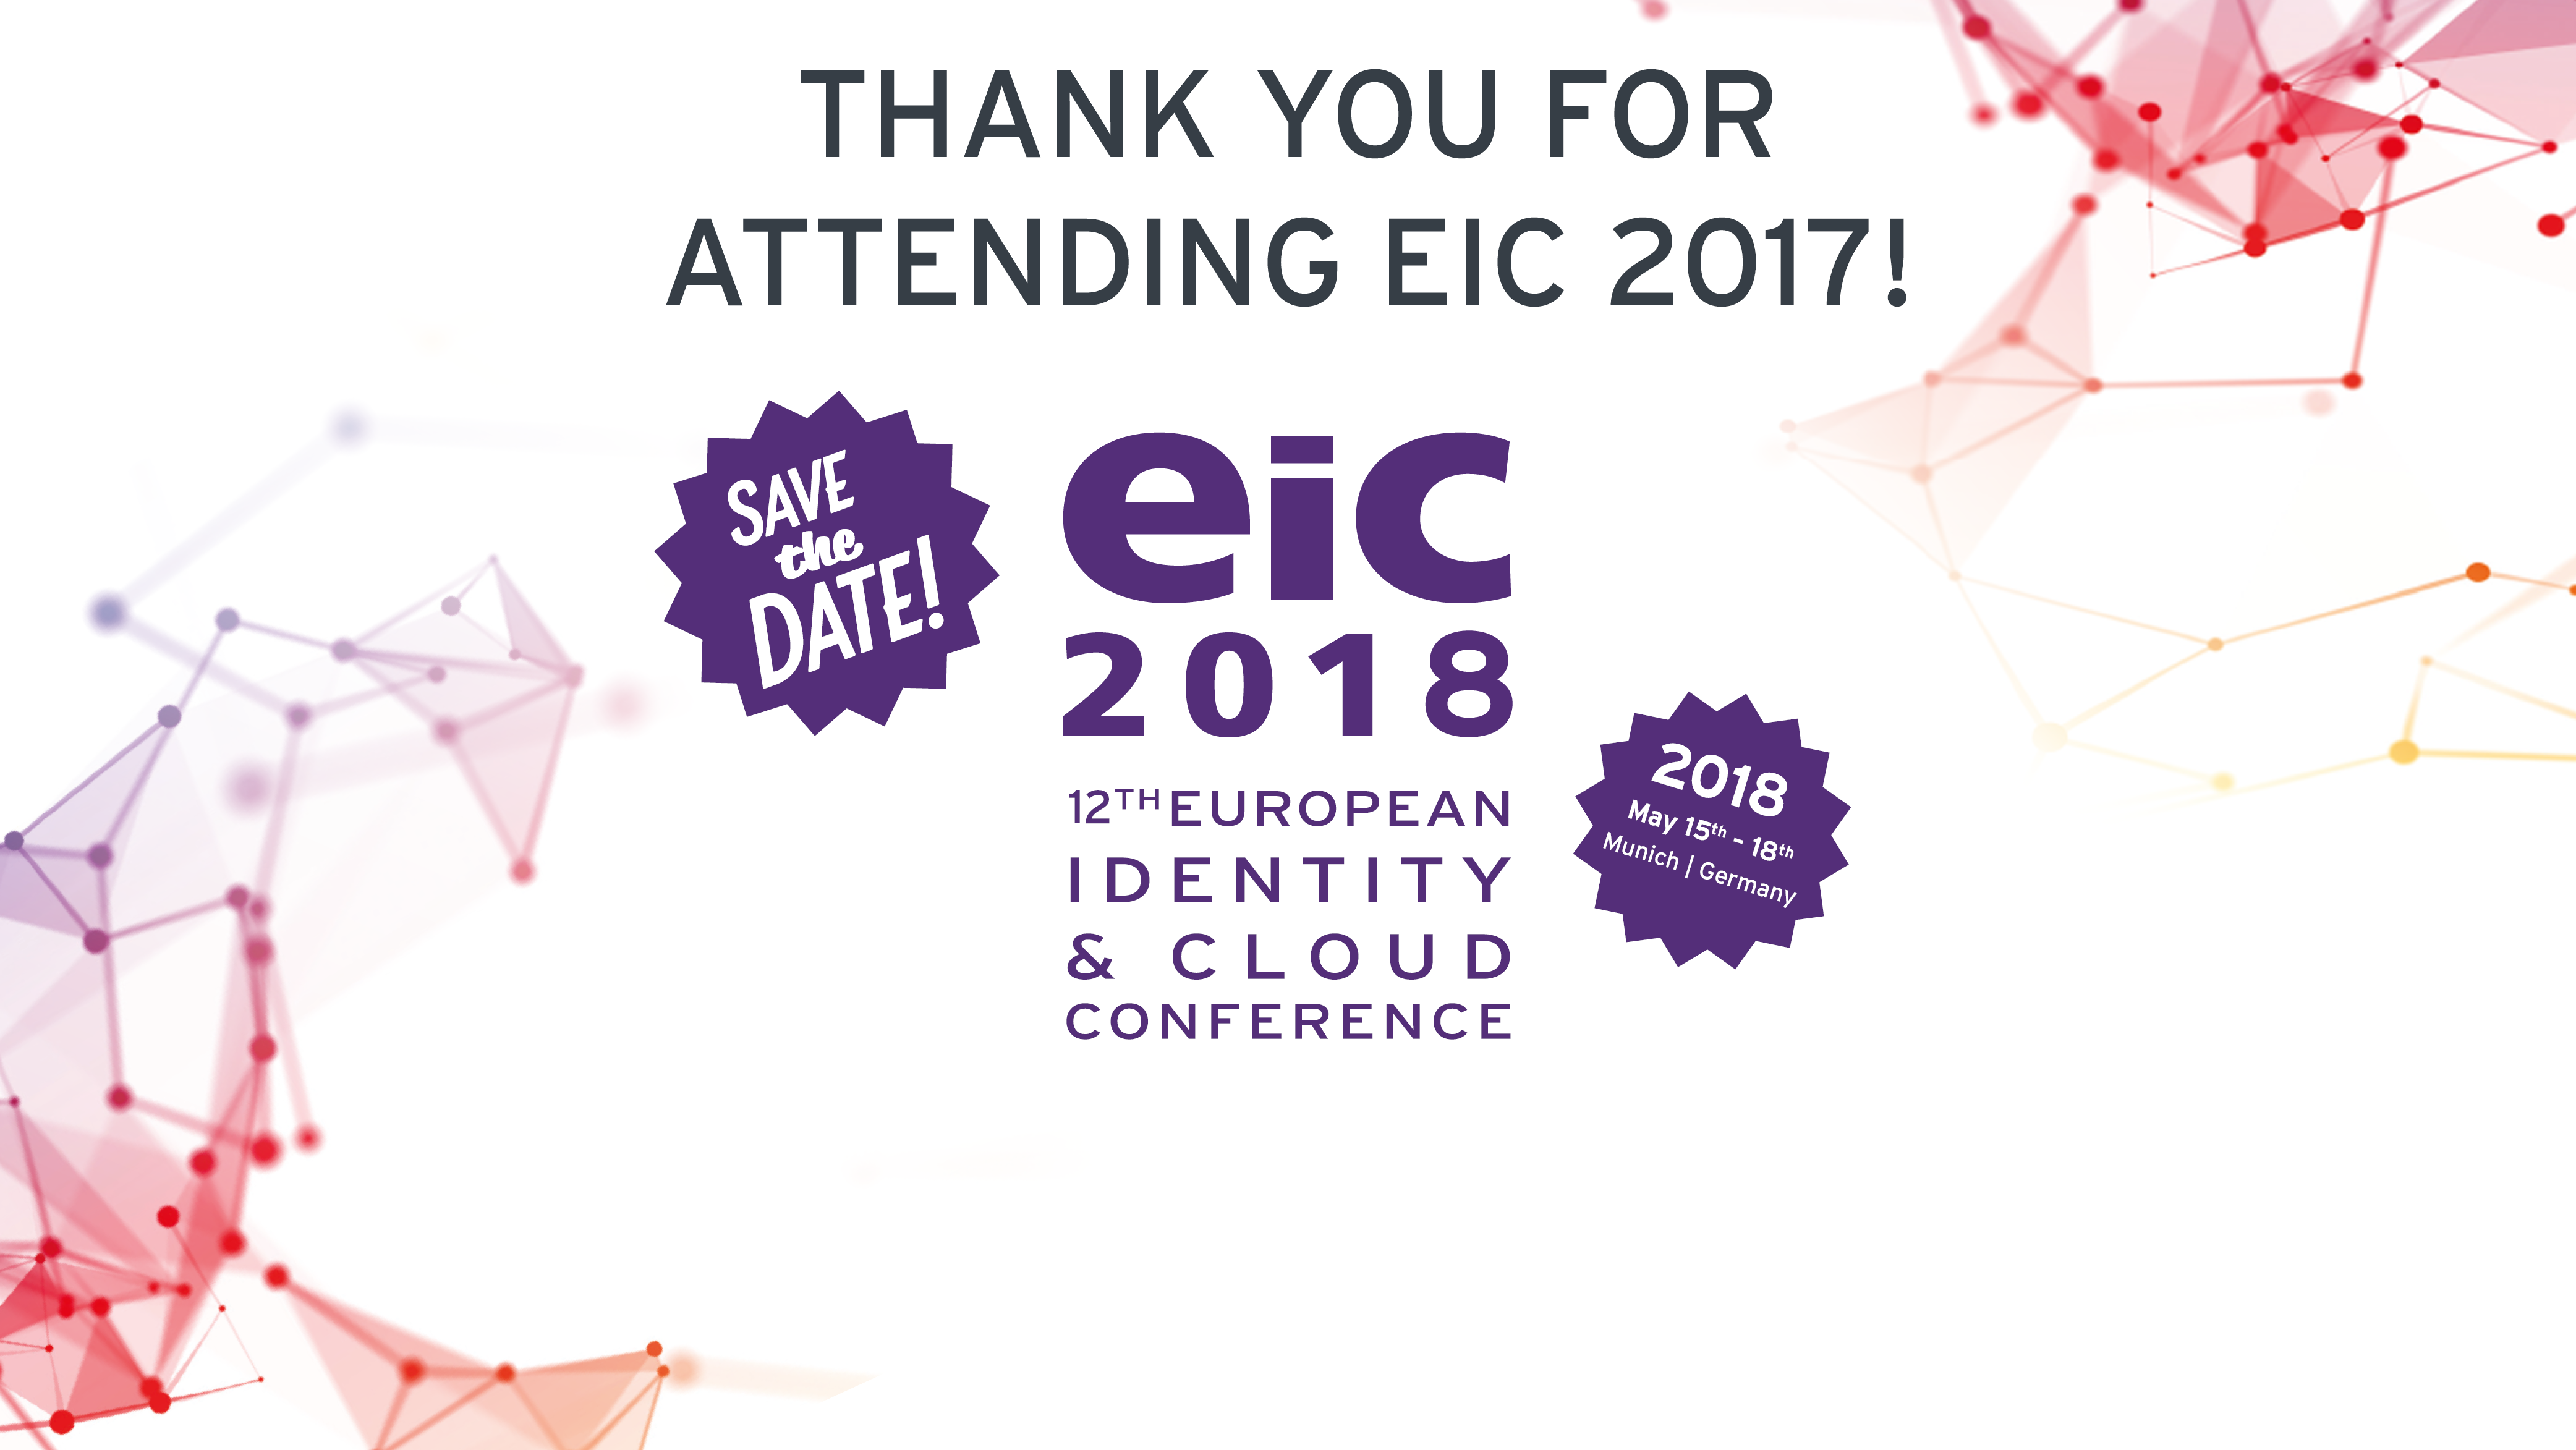 Thank you for attending EIC 2017, thank you for contributing!